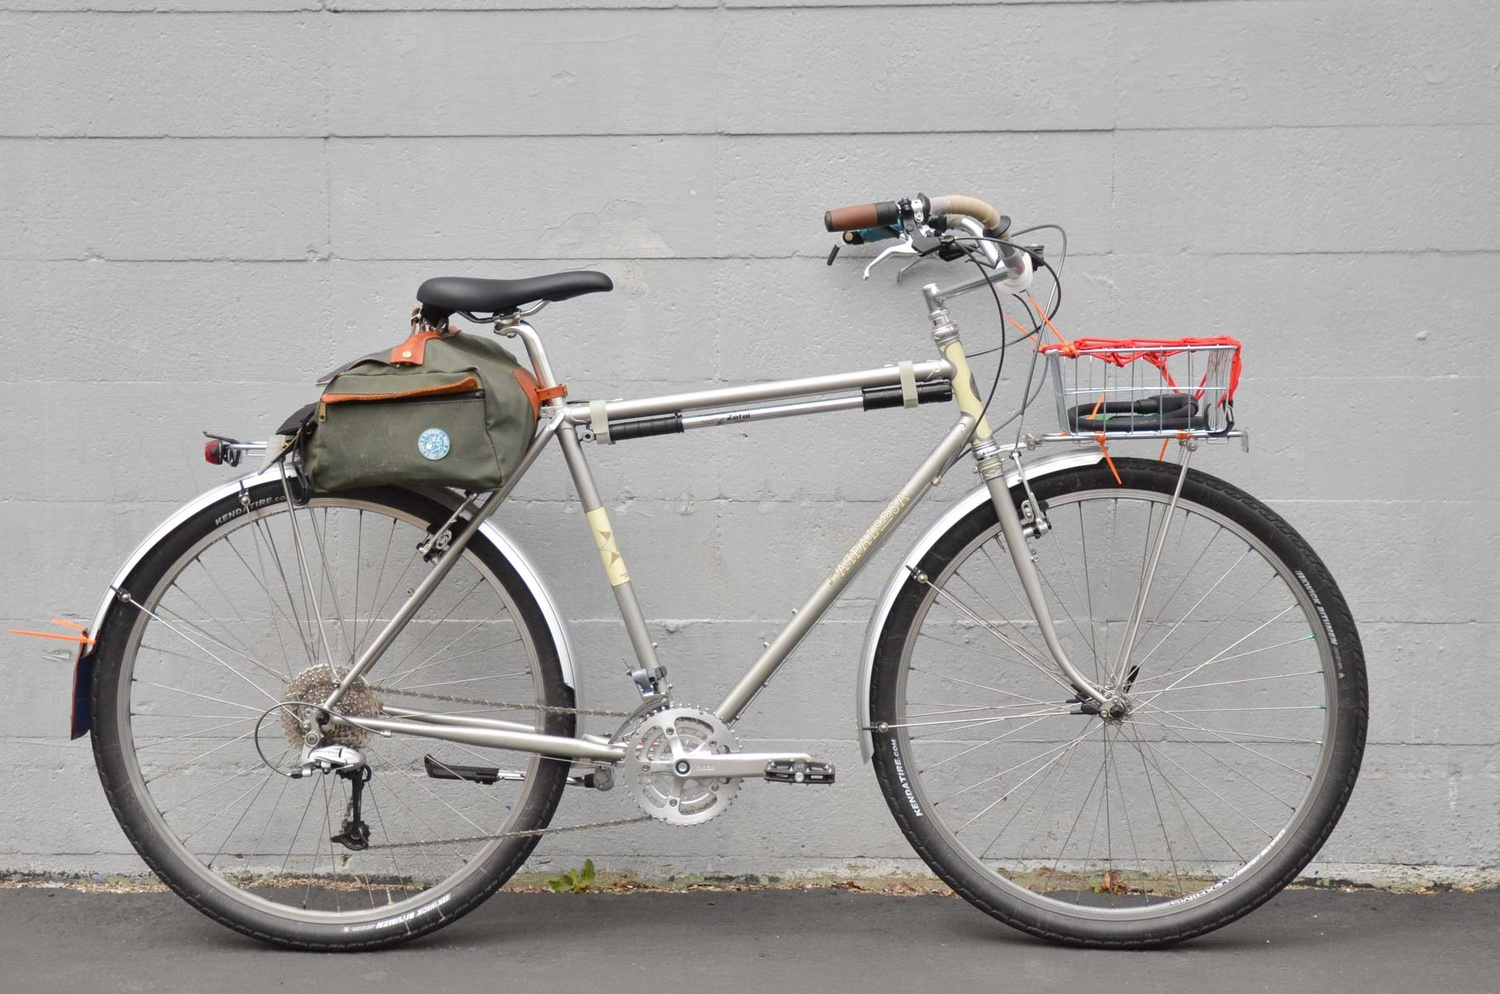 One of Grant Petersen's personal bicycles.